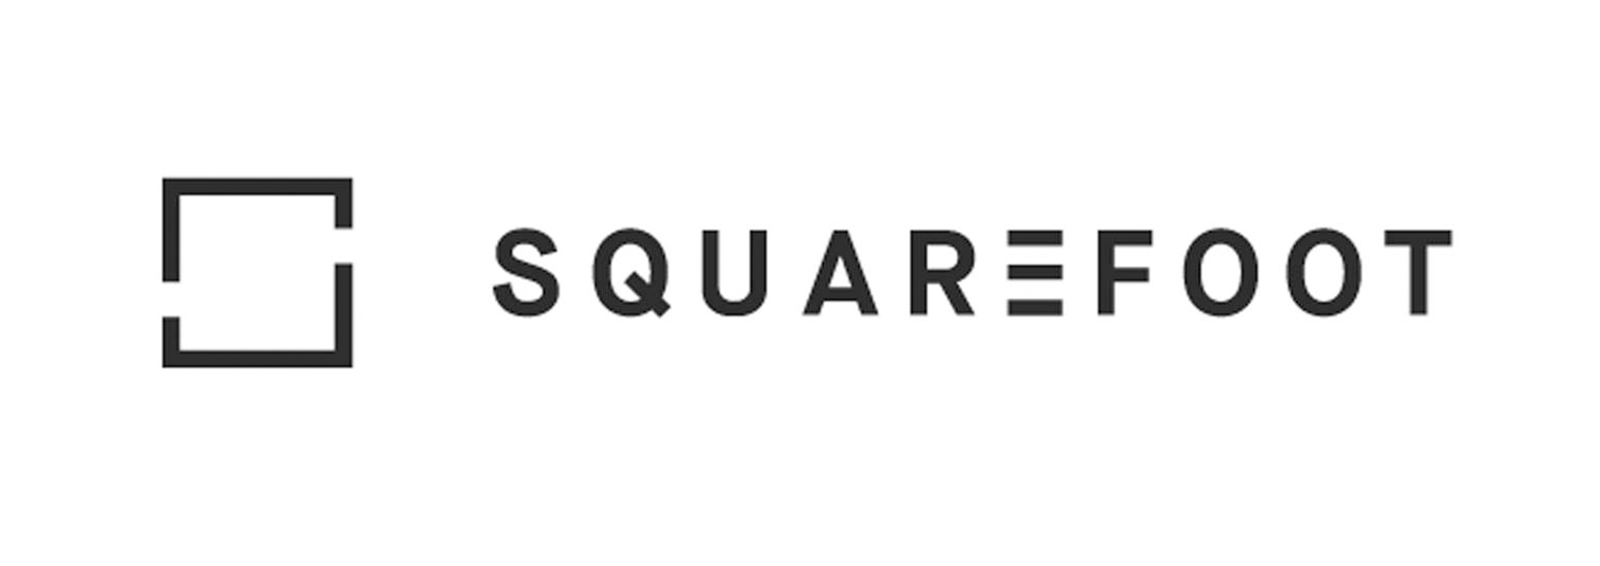 0_1_0000s_0014_SquareFoot.png